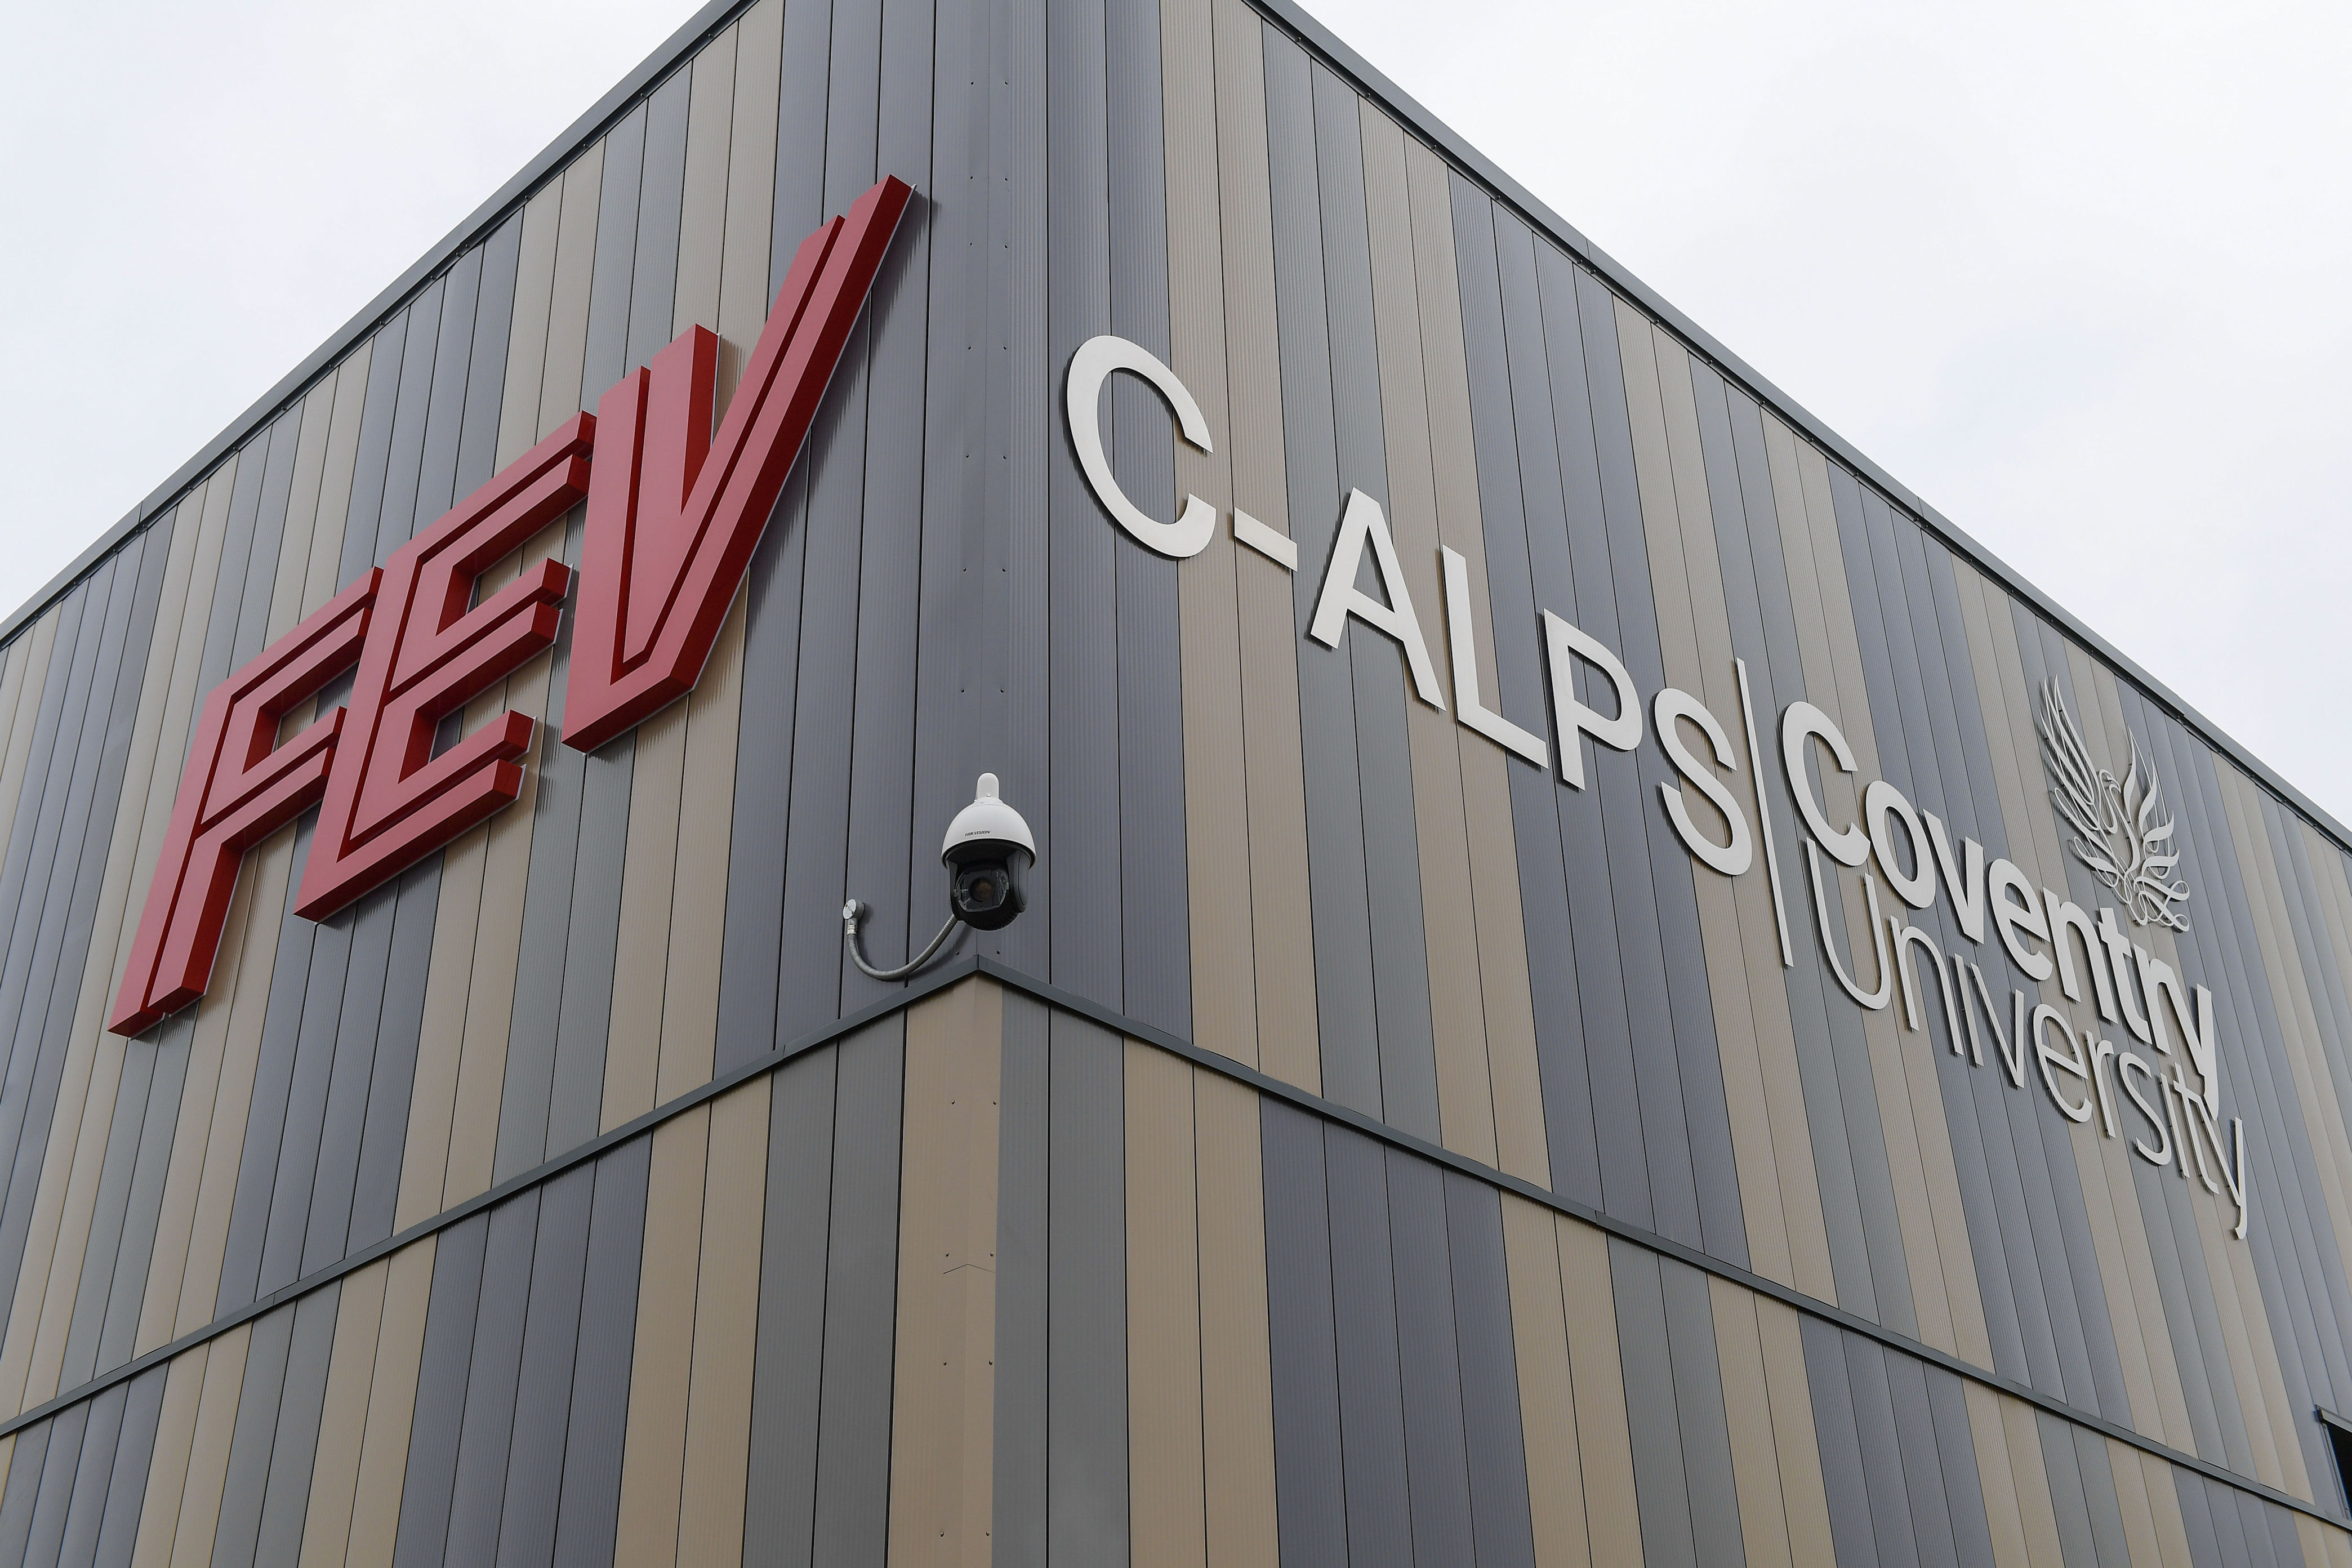 Coventry University - CALPS exterior sign close up mid.jpg